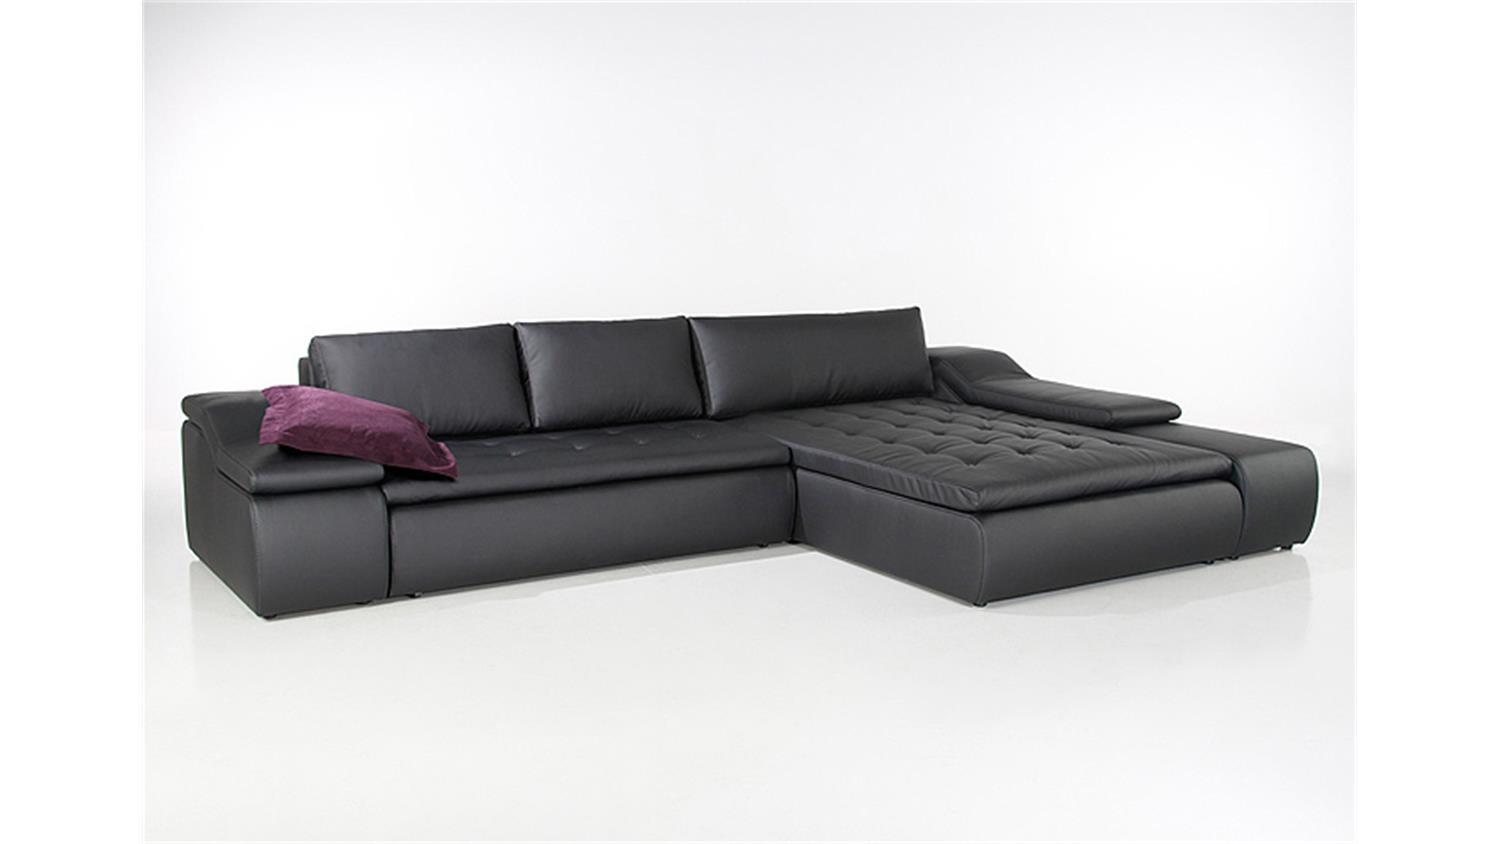 ecksofa mit schlaffunktion ikea inspirierendes design f r wohnm bel. Black Bedroom Furniture Sets. Home Design Ideas